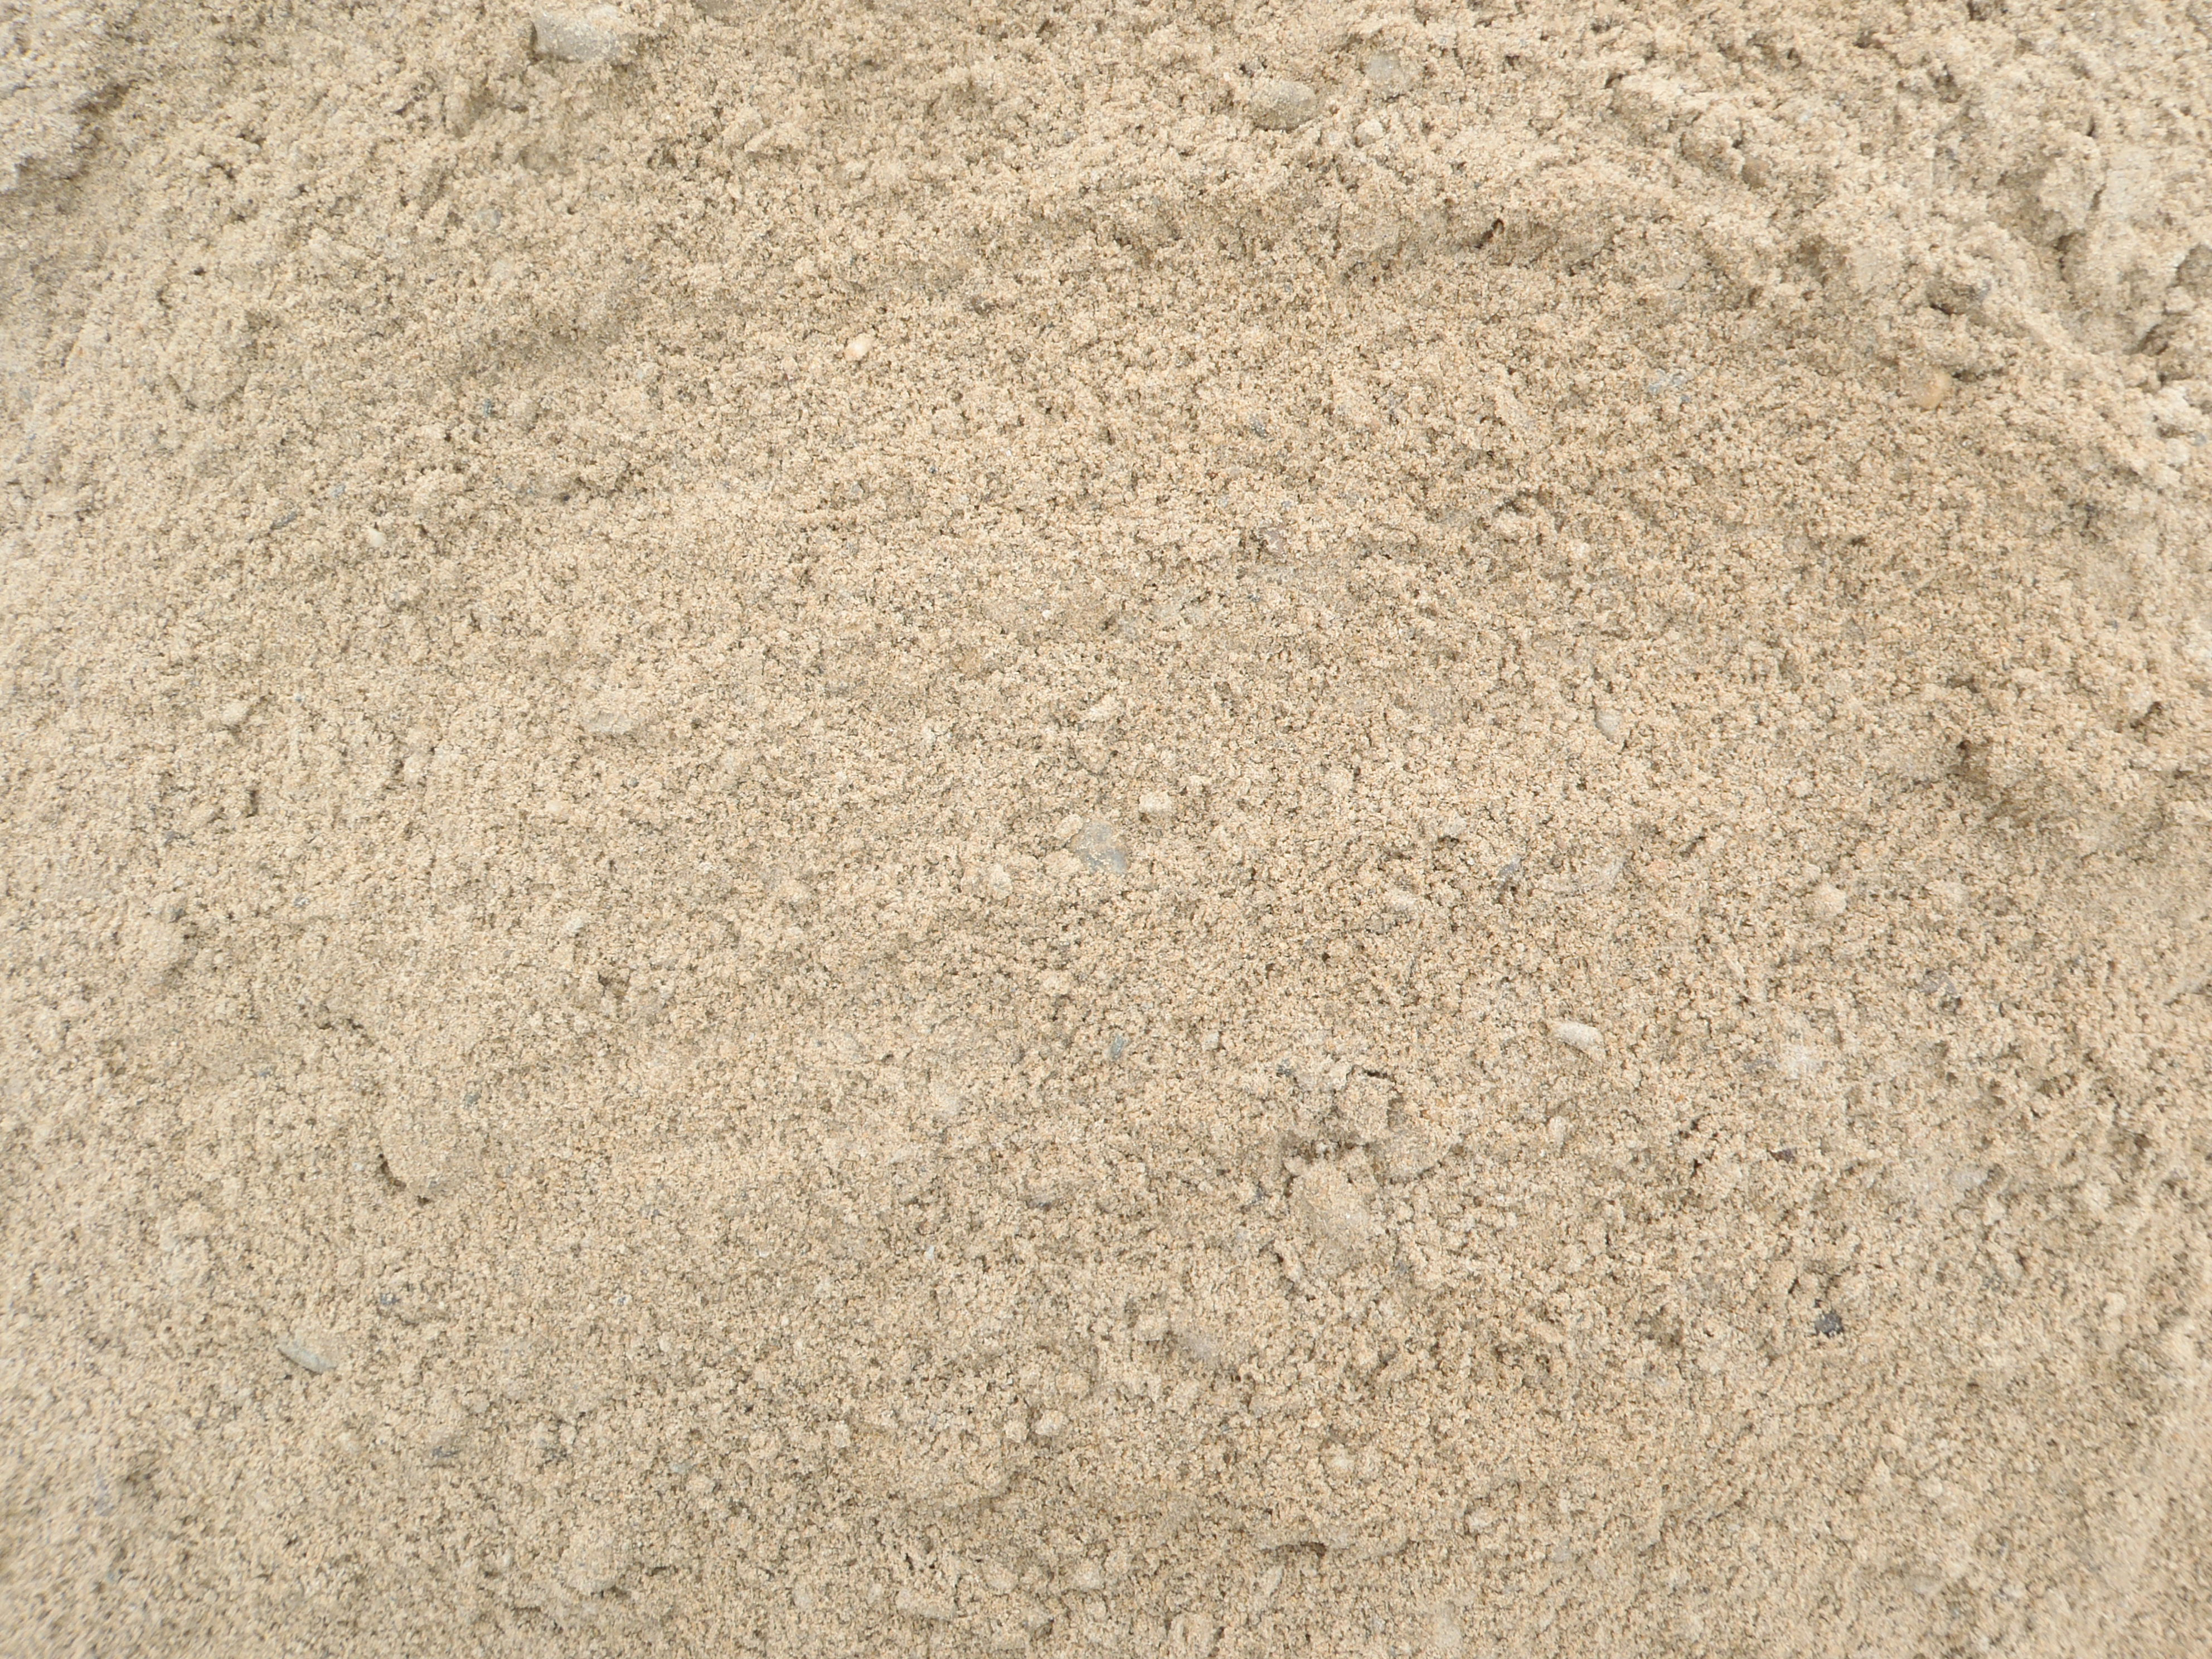 The meaning and symbolism of the word - Sand